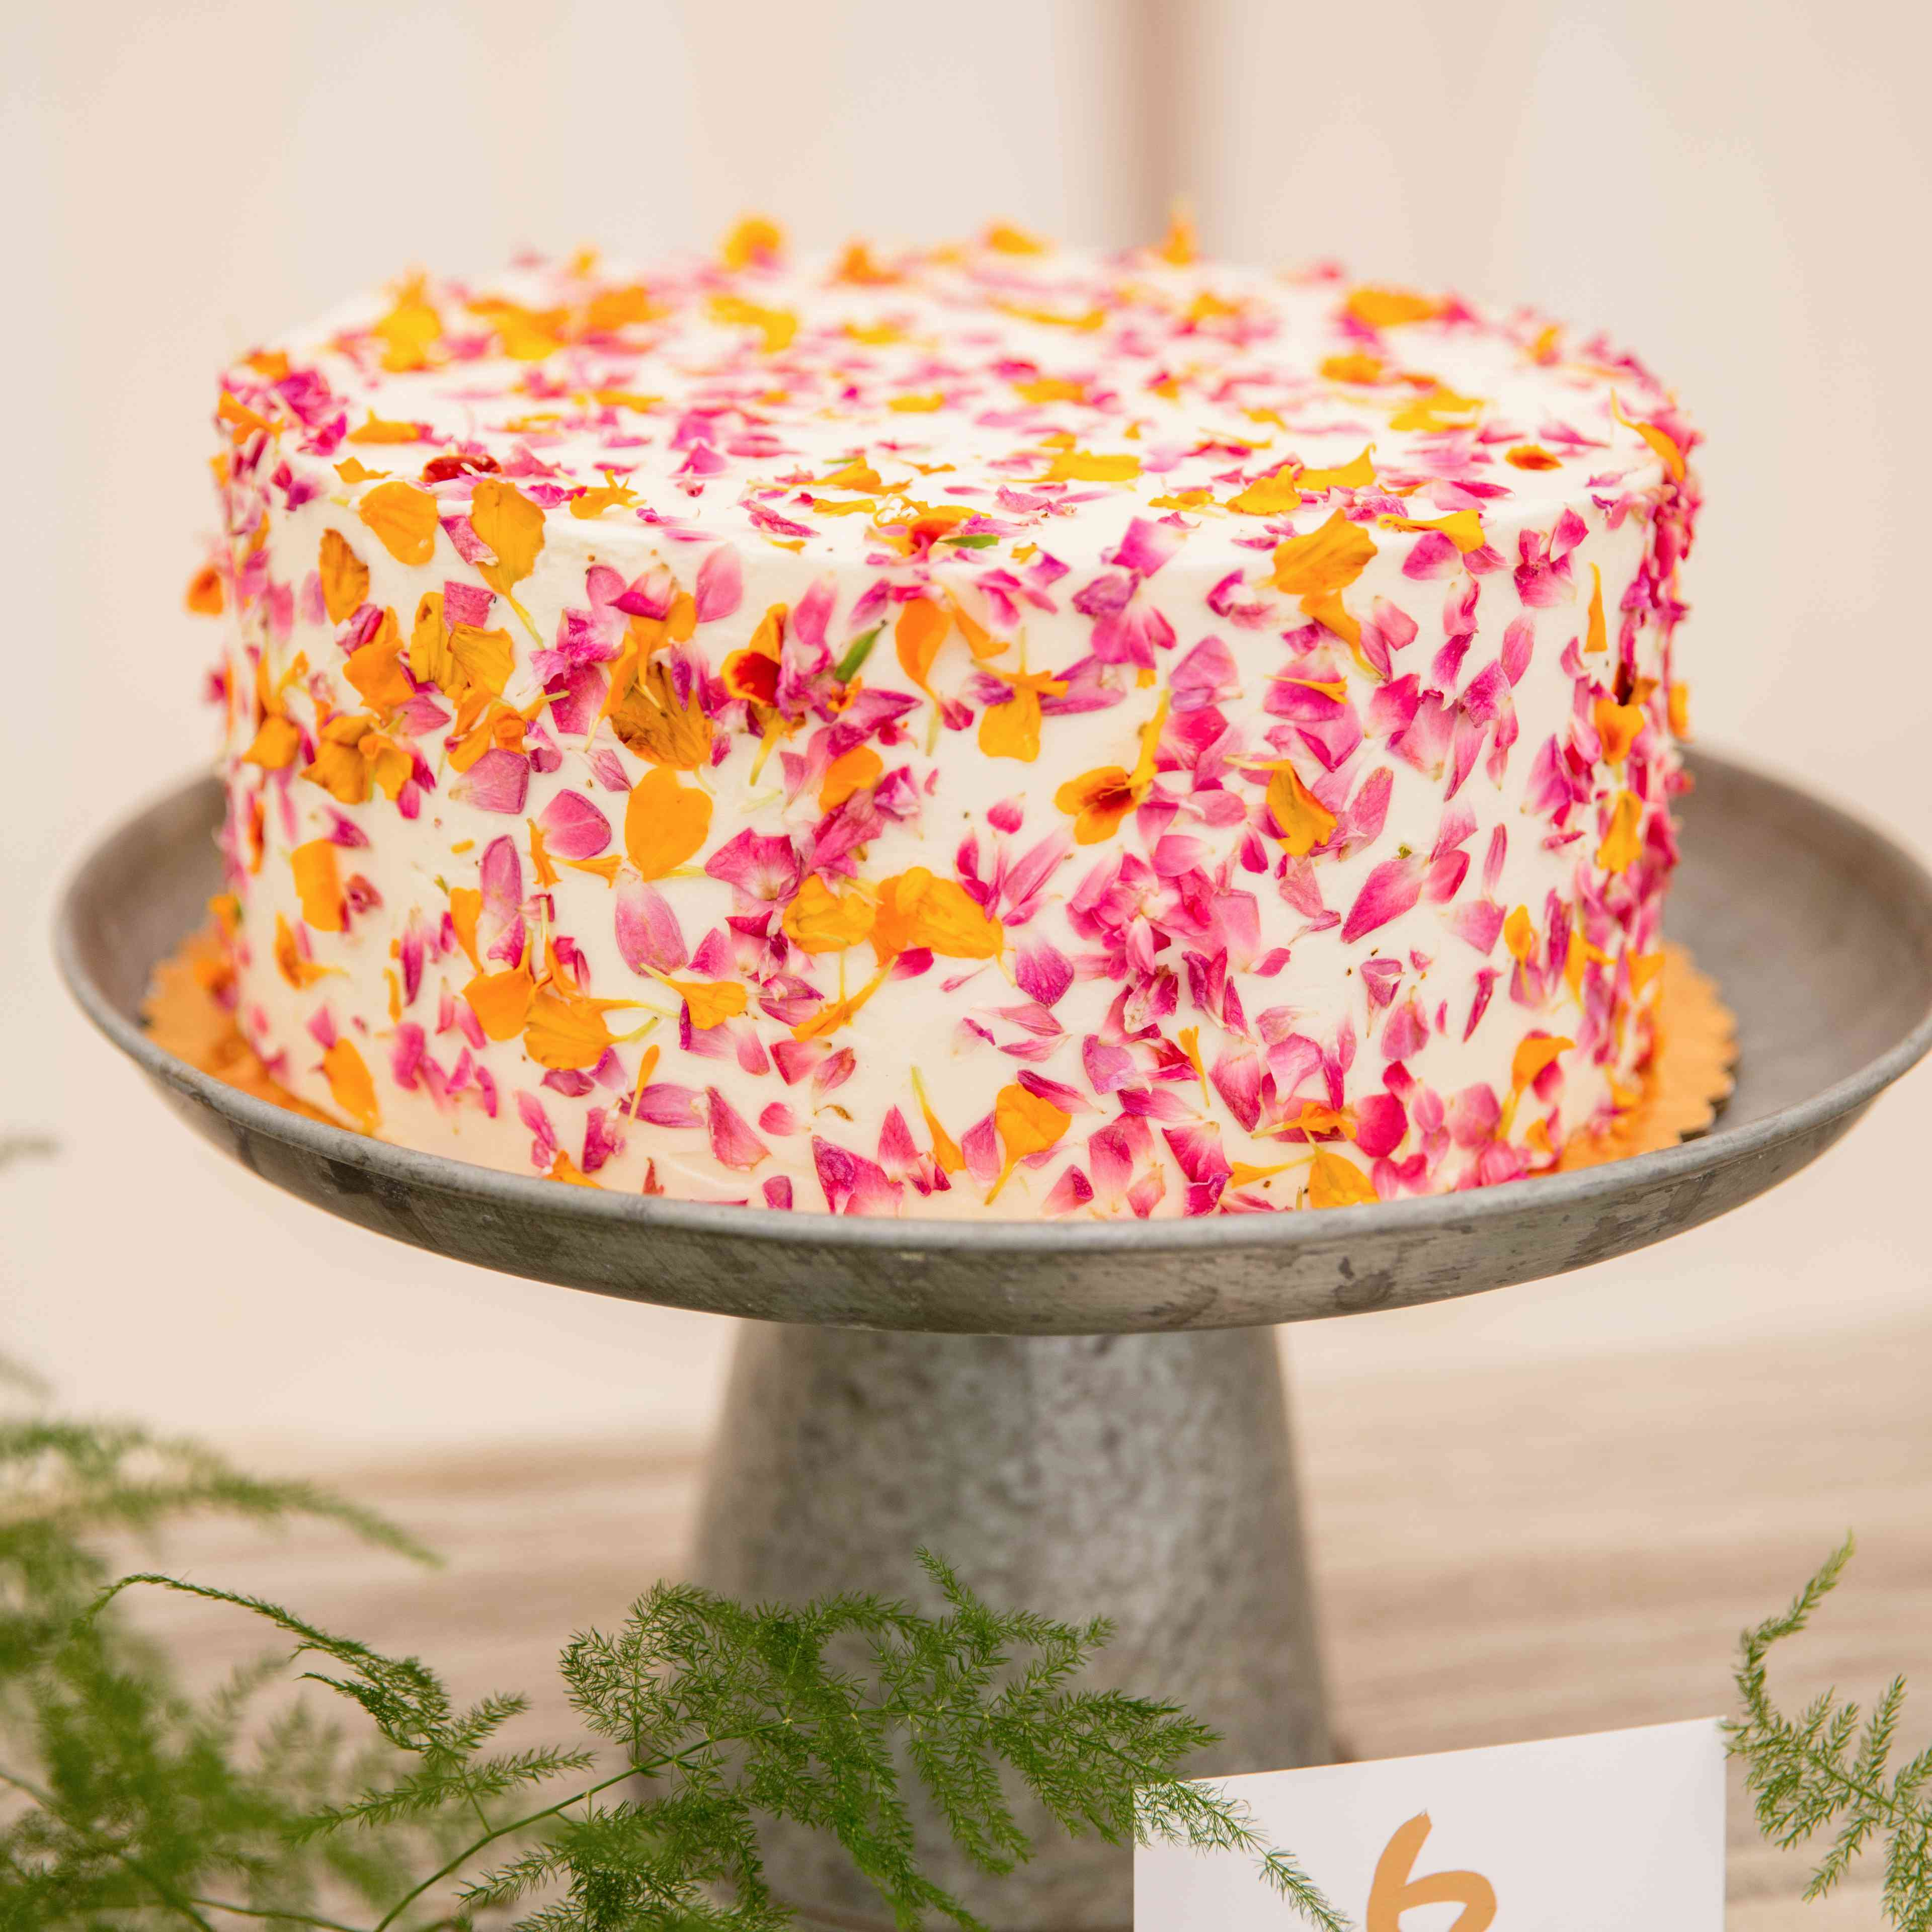 A wedding cake with pressed petals